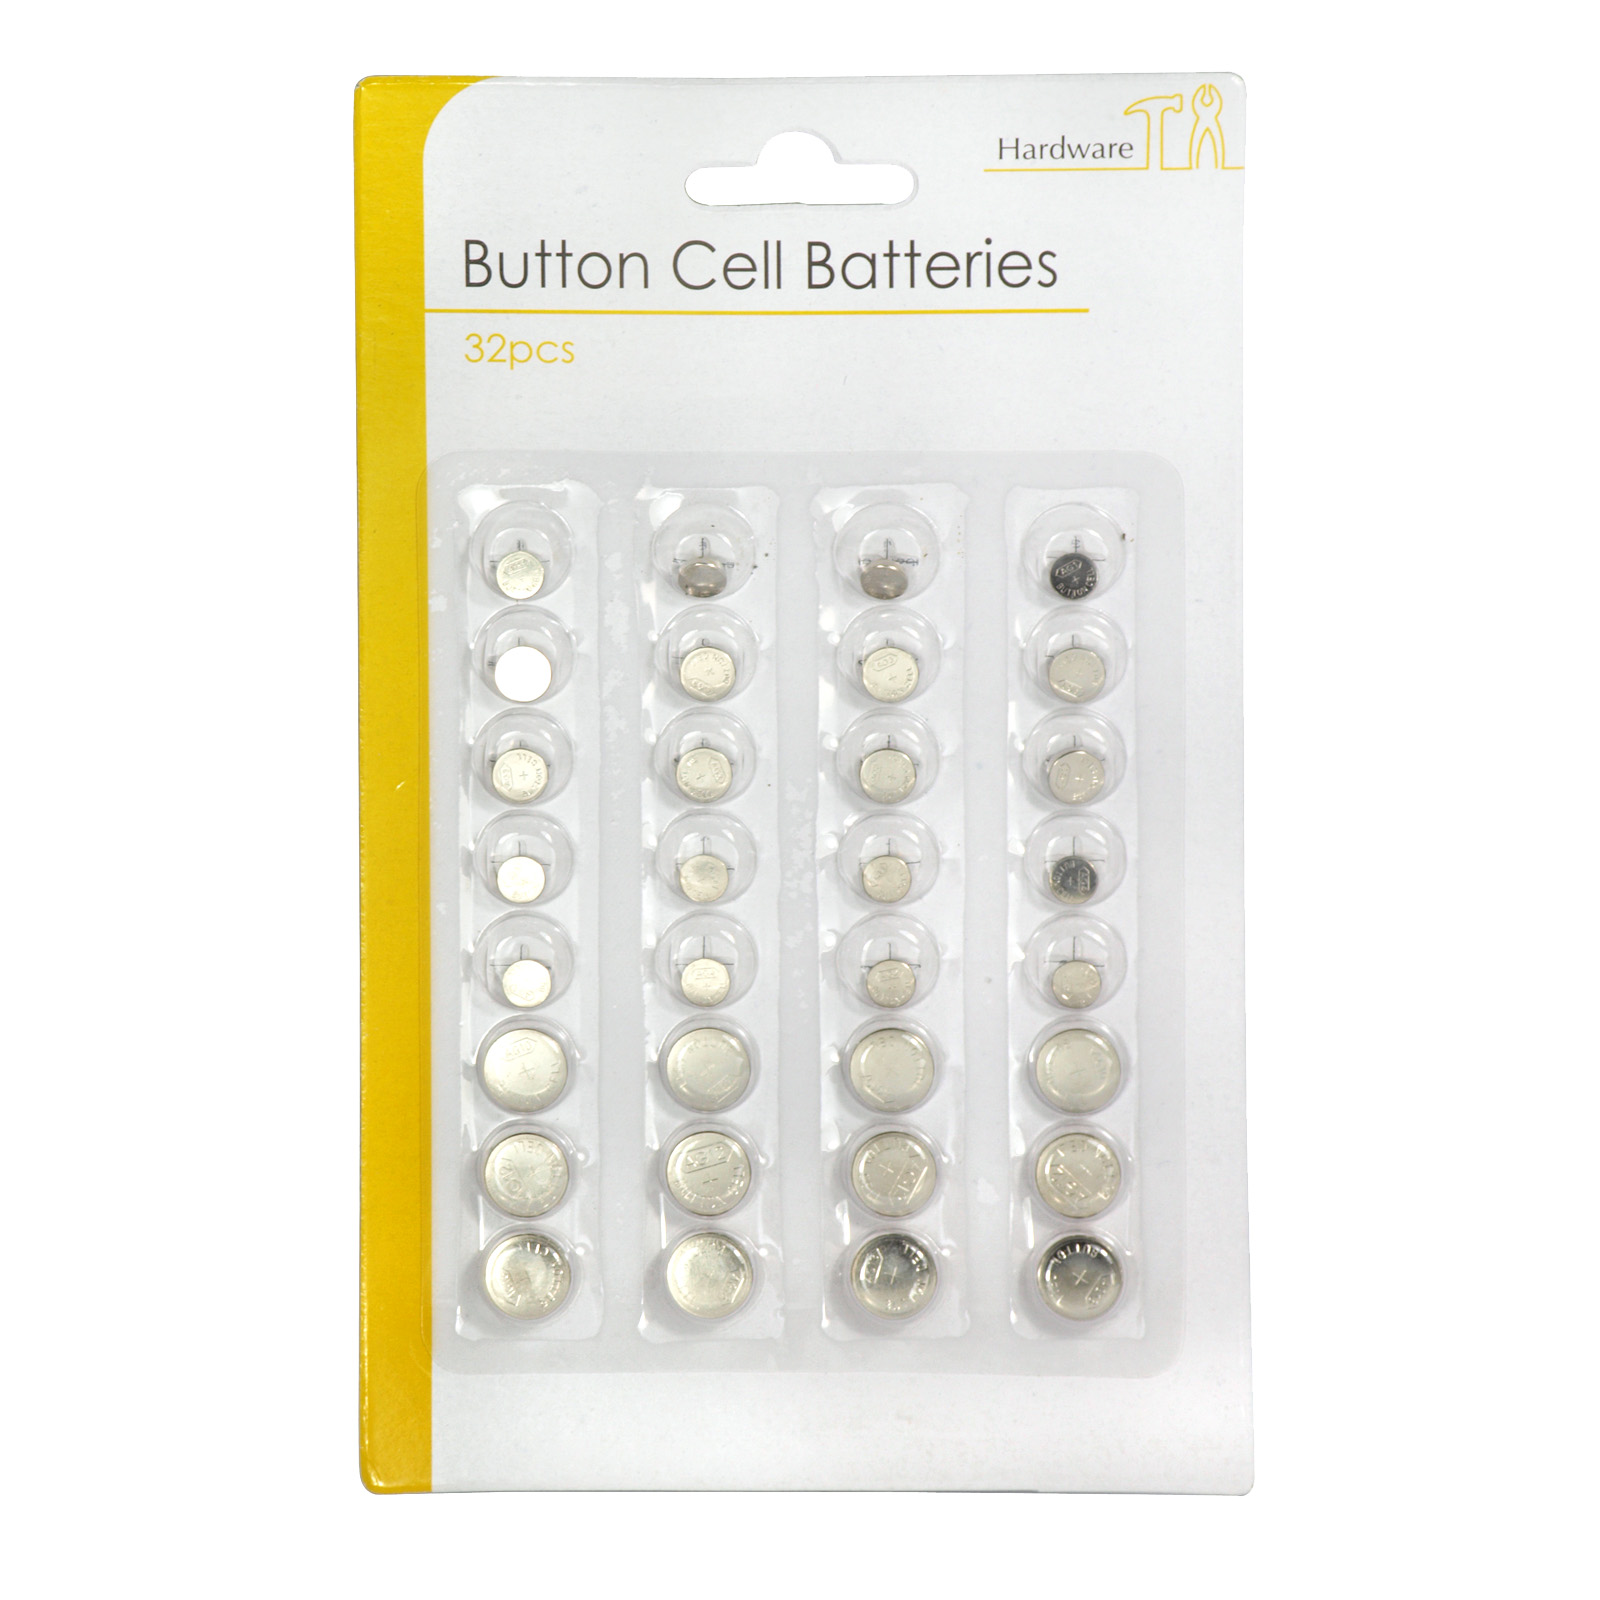 SIL 20 BUTTON CELL BATTERIES X12